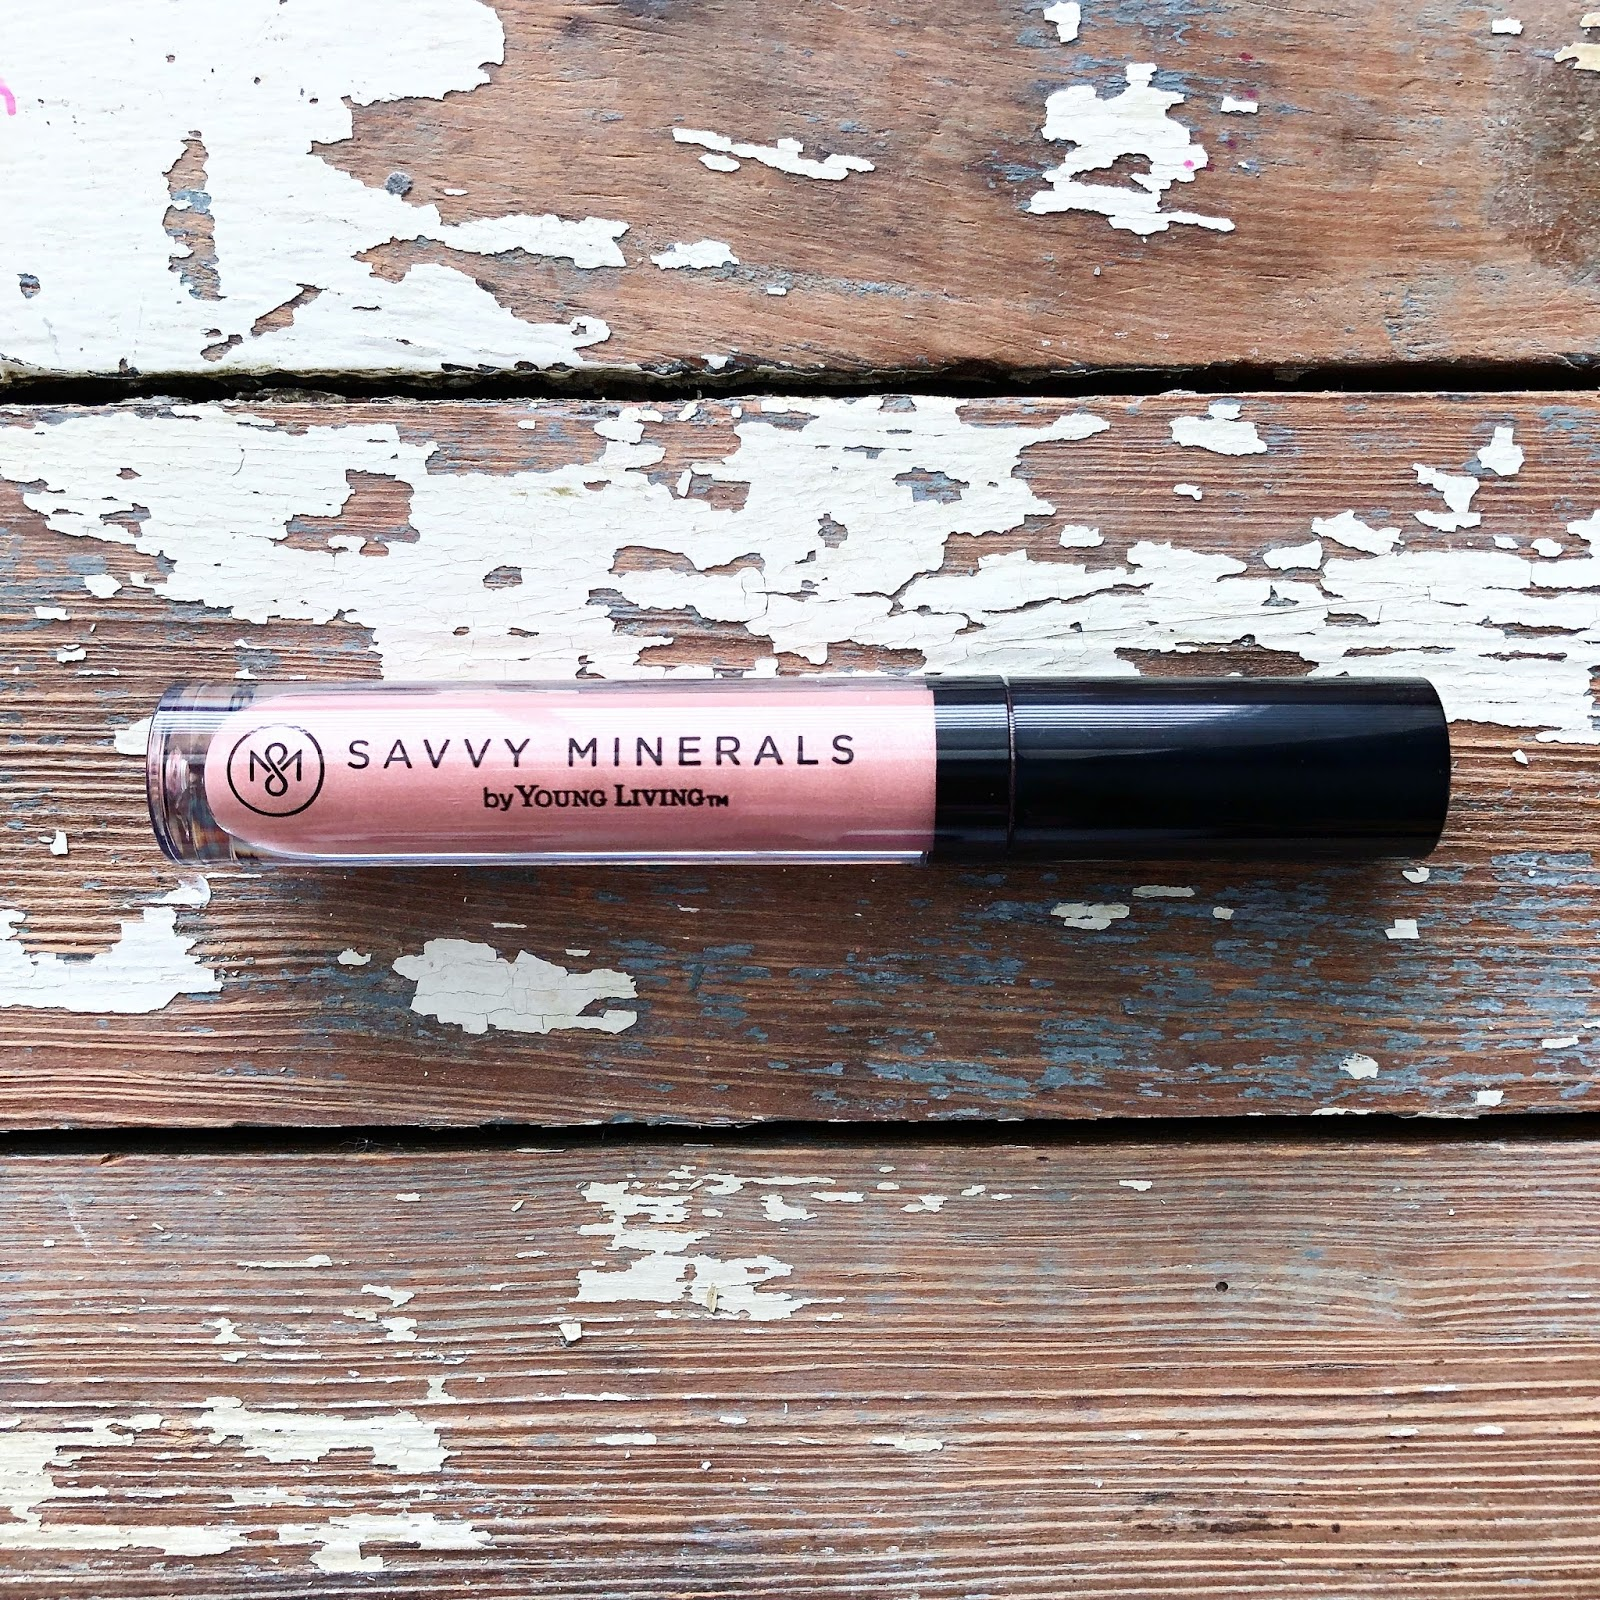 My review of Young Living Savvy Minerals Starter Kit Warm, Cool, Dark